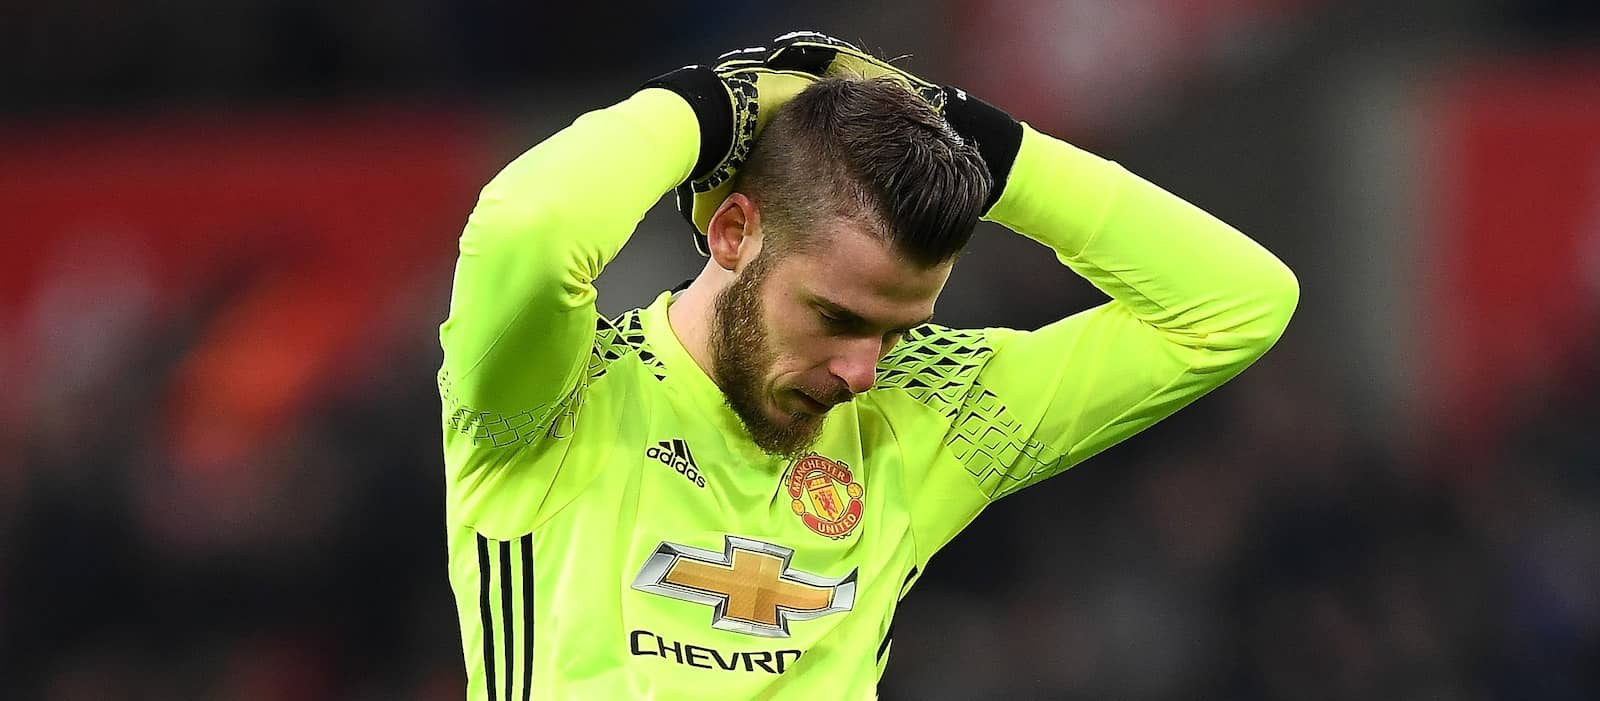 Juan Mata: David de Gea will not leave Manchester United this summer